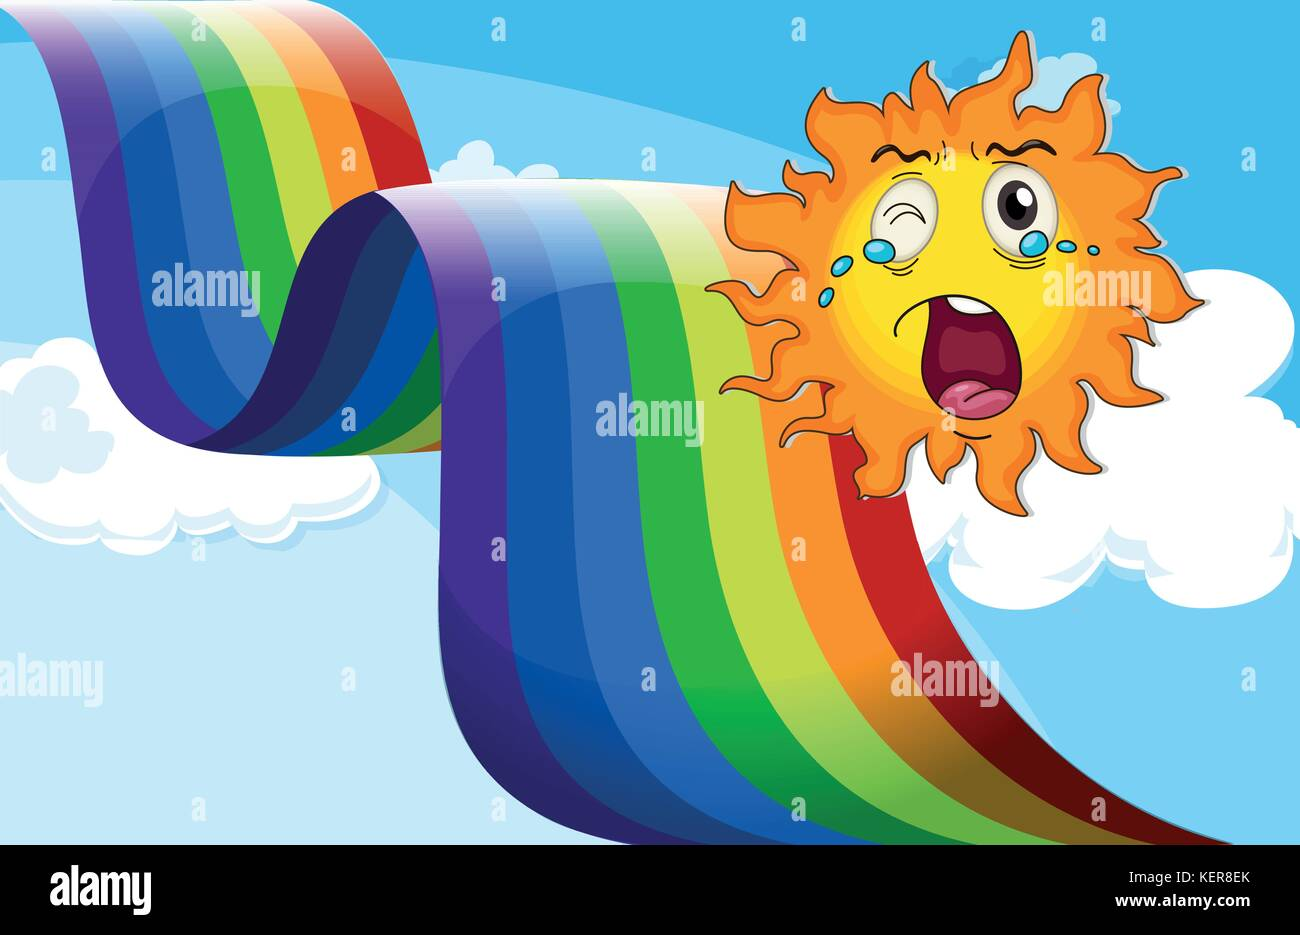 Illustration of a crying sun near the rainbow - Stock Vector